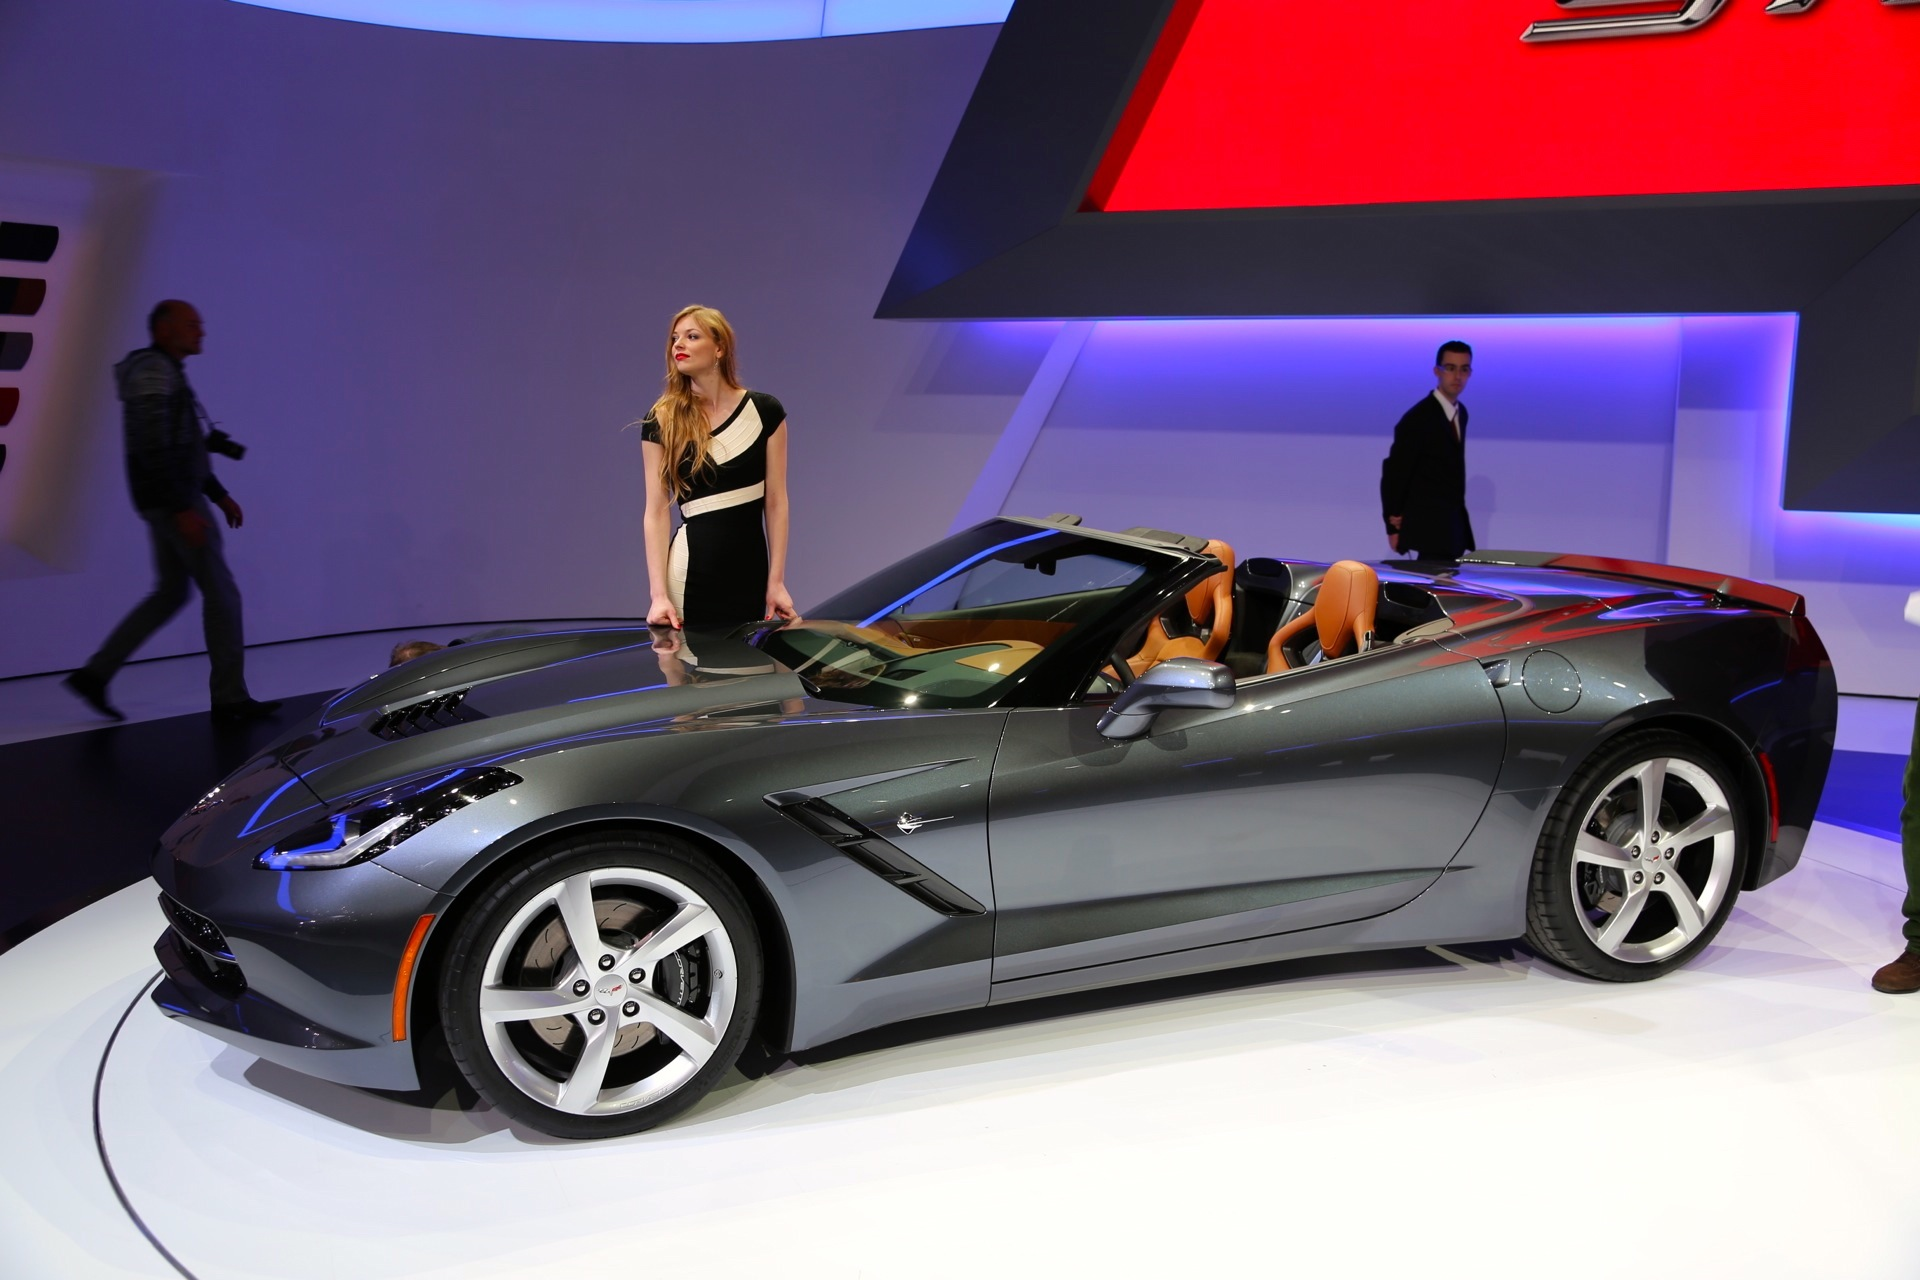 Wonderful 2014 Chevrolet Corvette Stingray Convertible Live Photos U0026 Video From  Geneva Debut